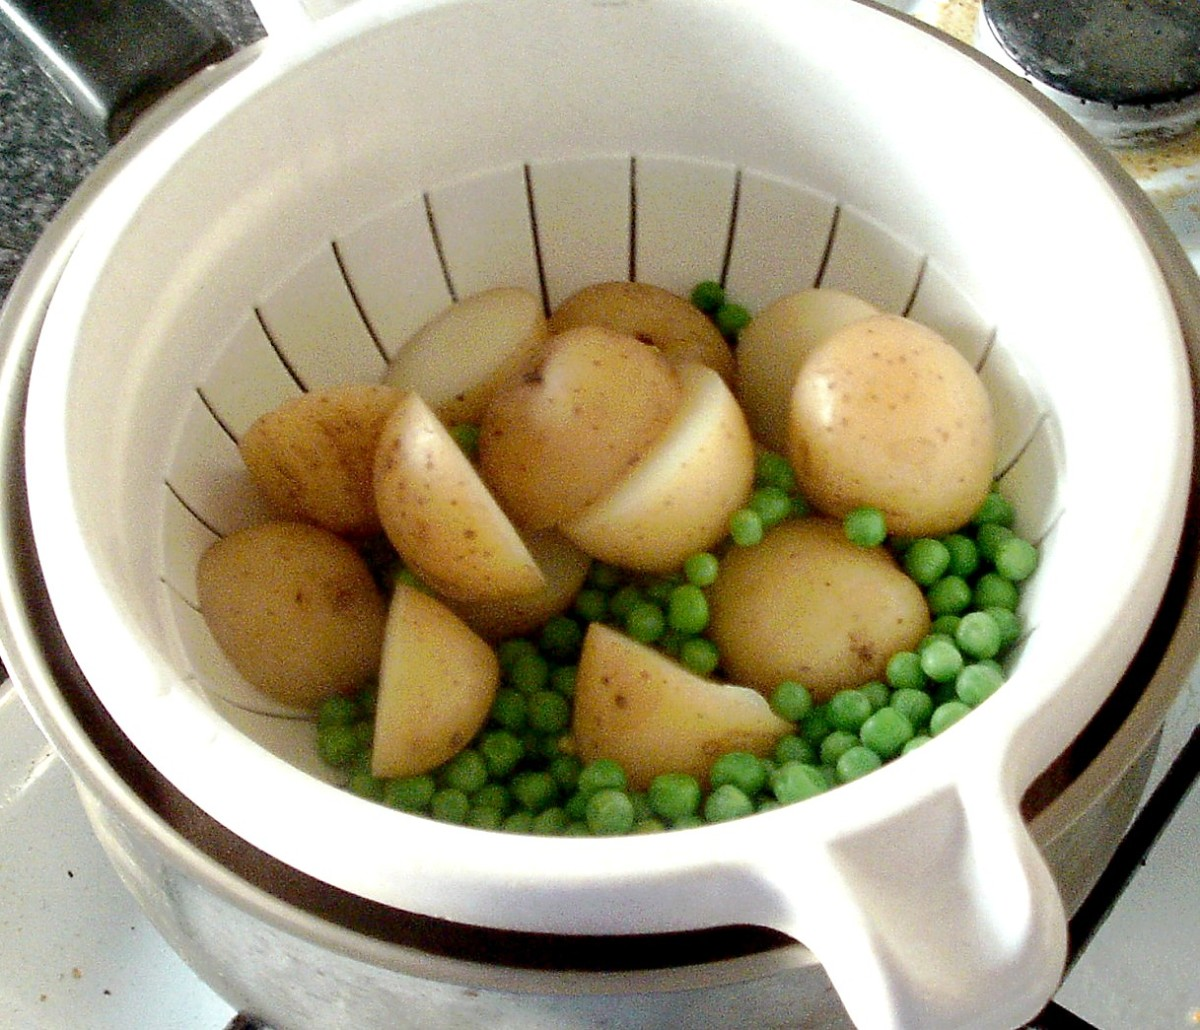 Drained peas and potatoes